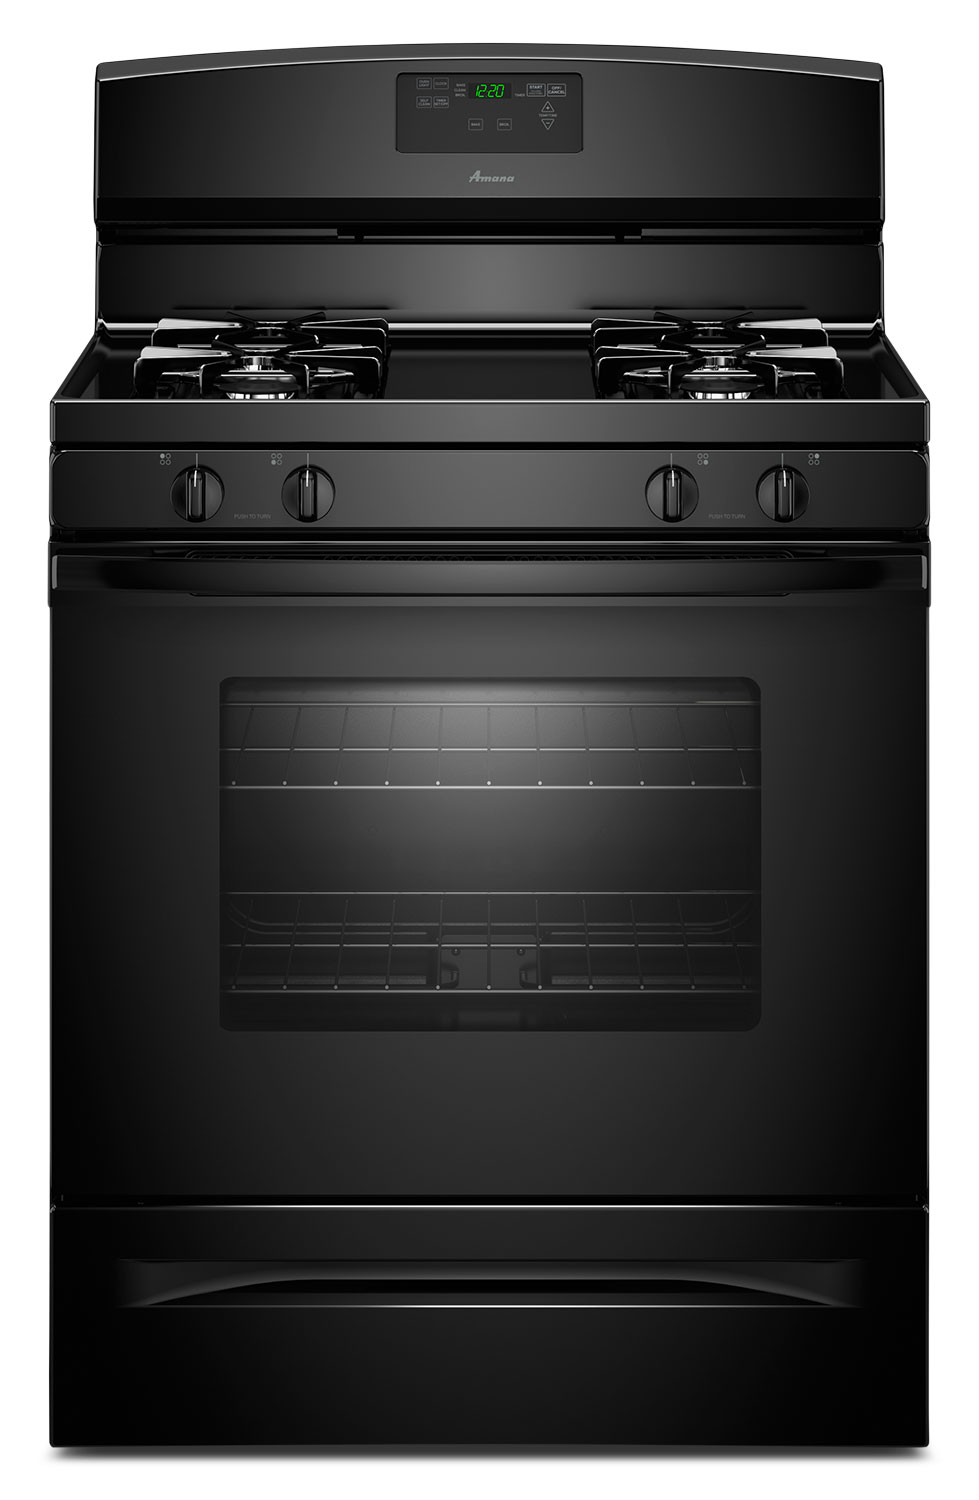 Cooking Products - Amana Black Freestanding Gas Range (5.0 Cu. Ft.) - AGR5630BDW